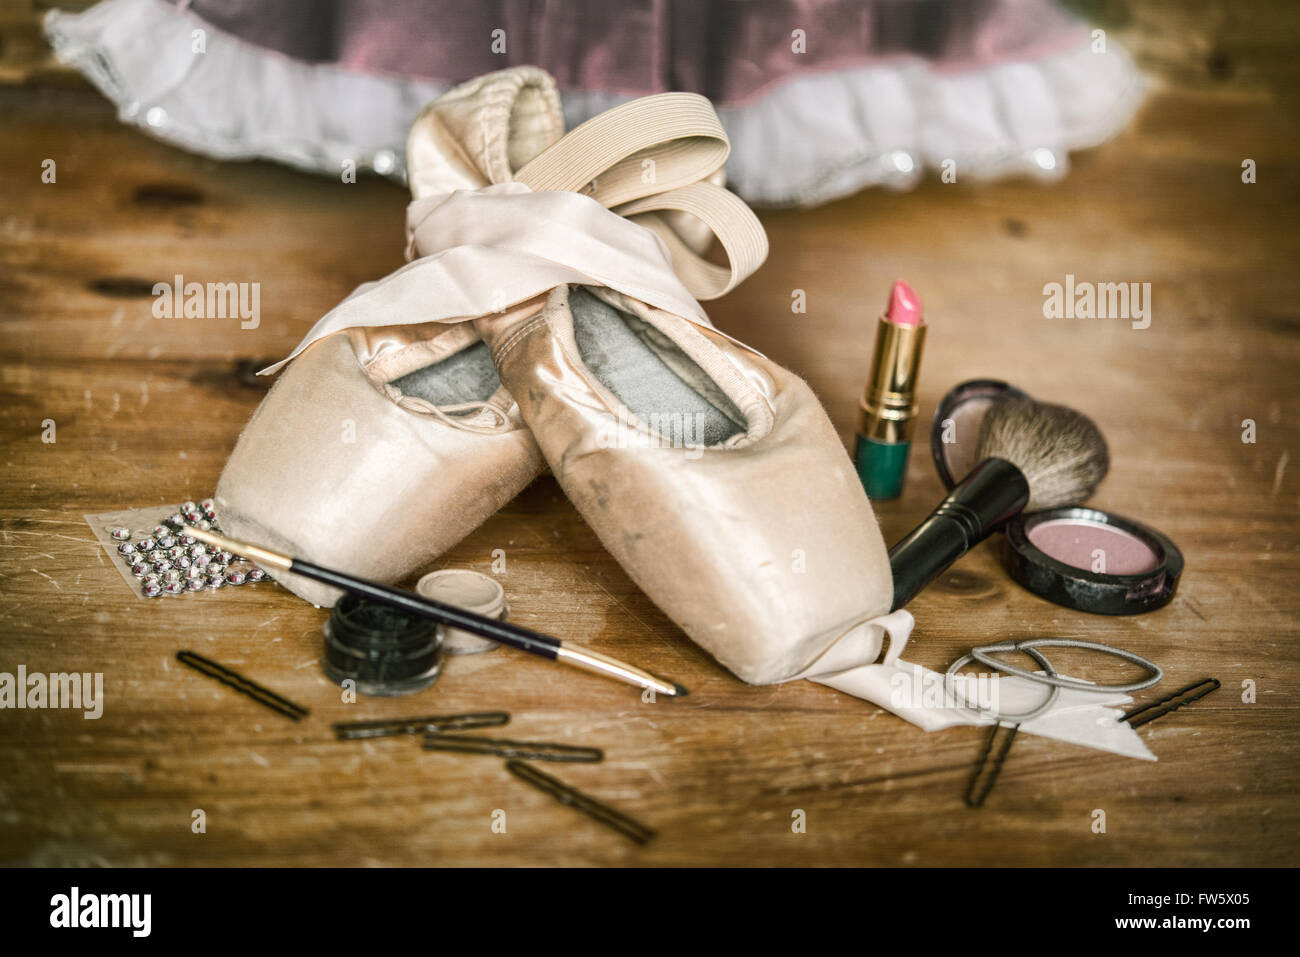 Backstage a Ballerinas Pointe Shoes and Makeup and Hair Accessorie - Stock Image